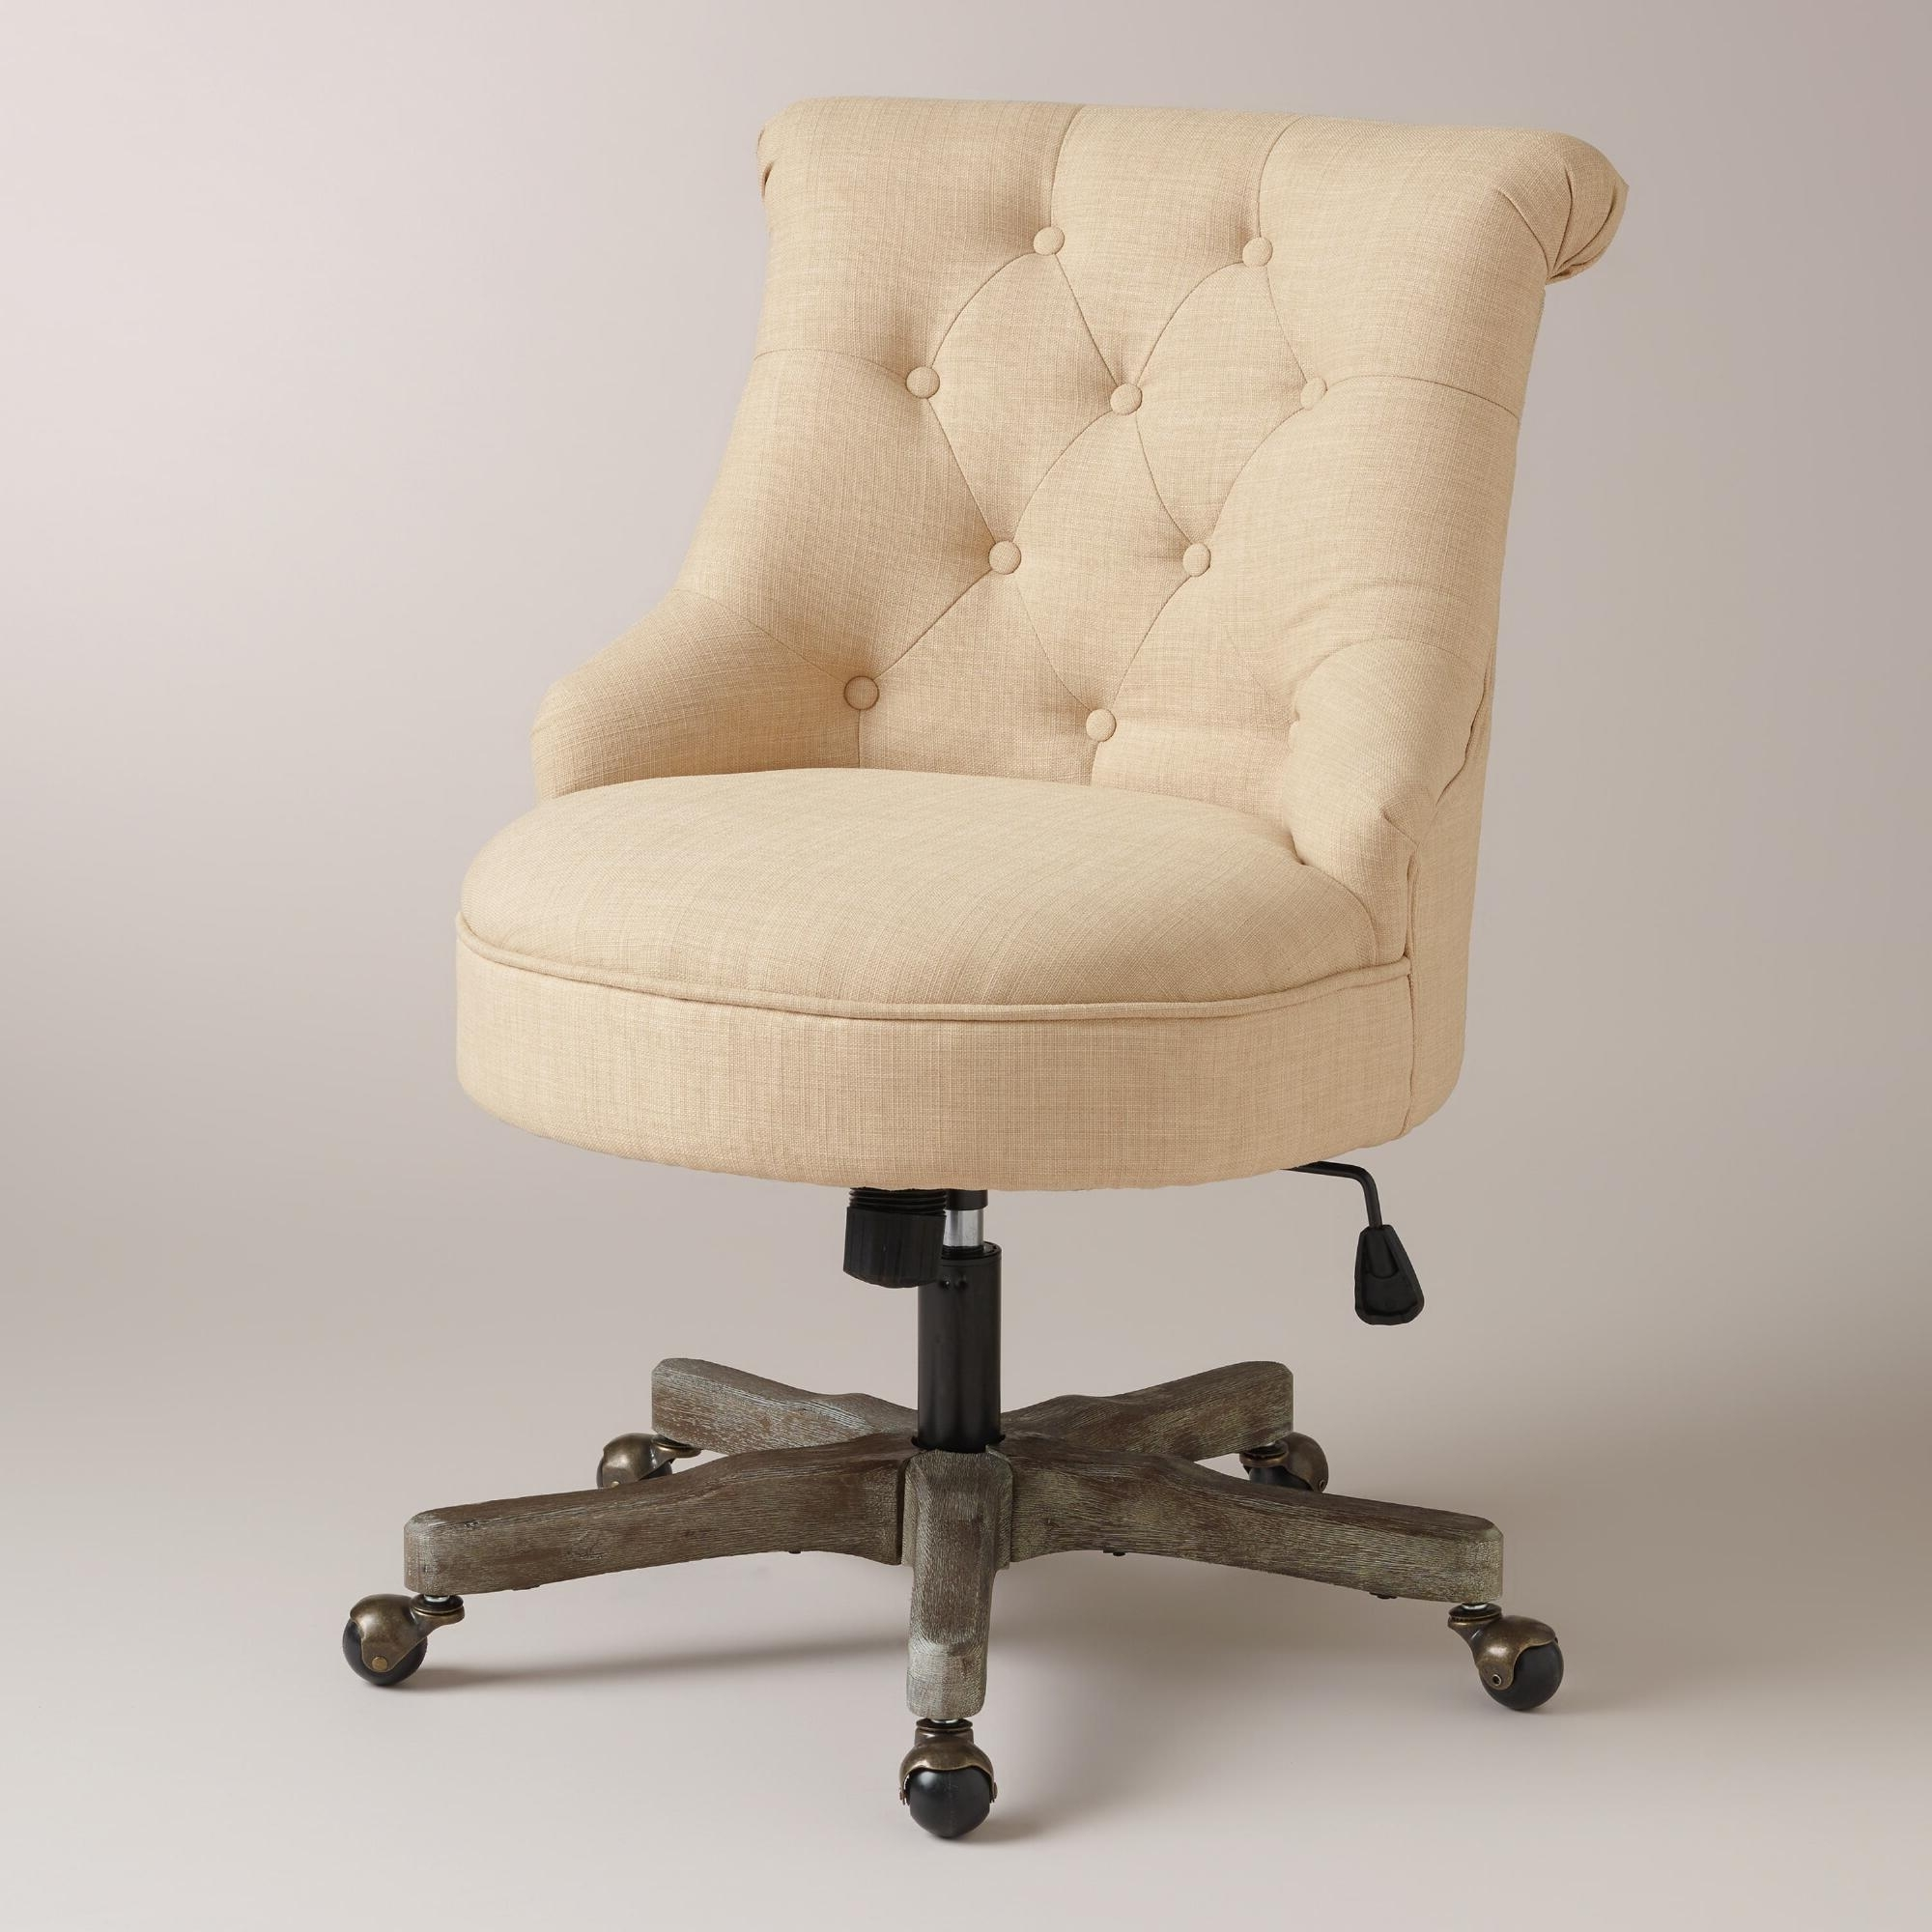 Most Up To Date Upholstered Office Chairs For Desk Chair On Wheel Varied And For Upholstered Executive Office Chairs (View 7 of 20)